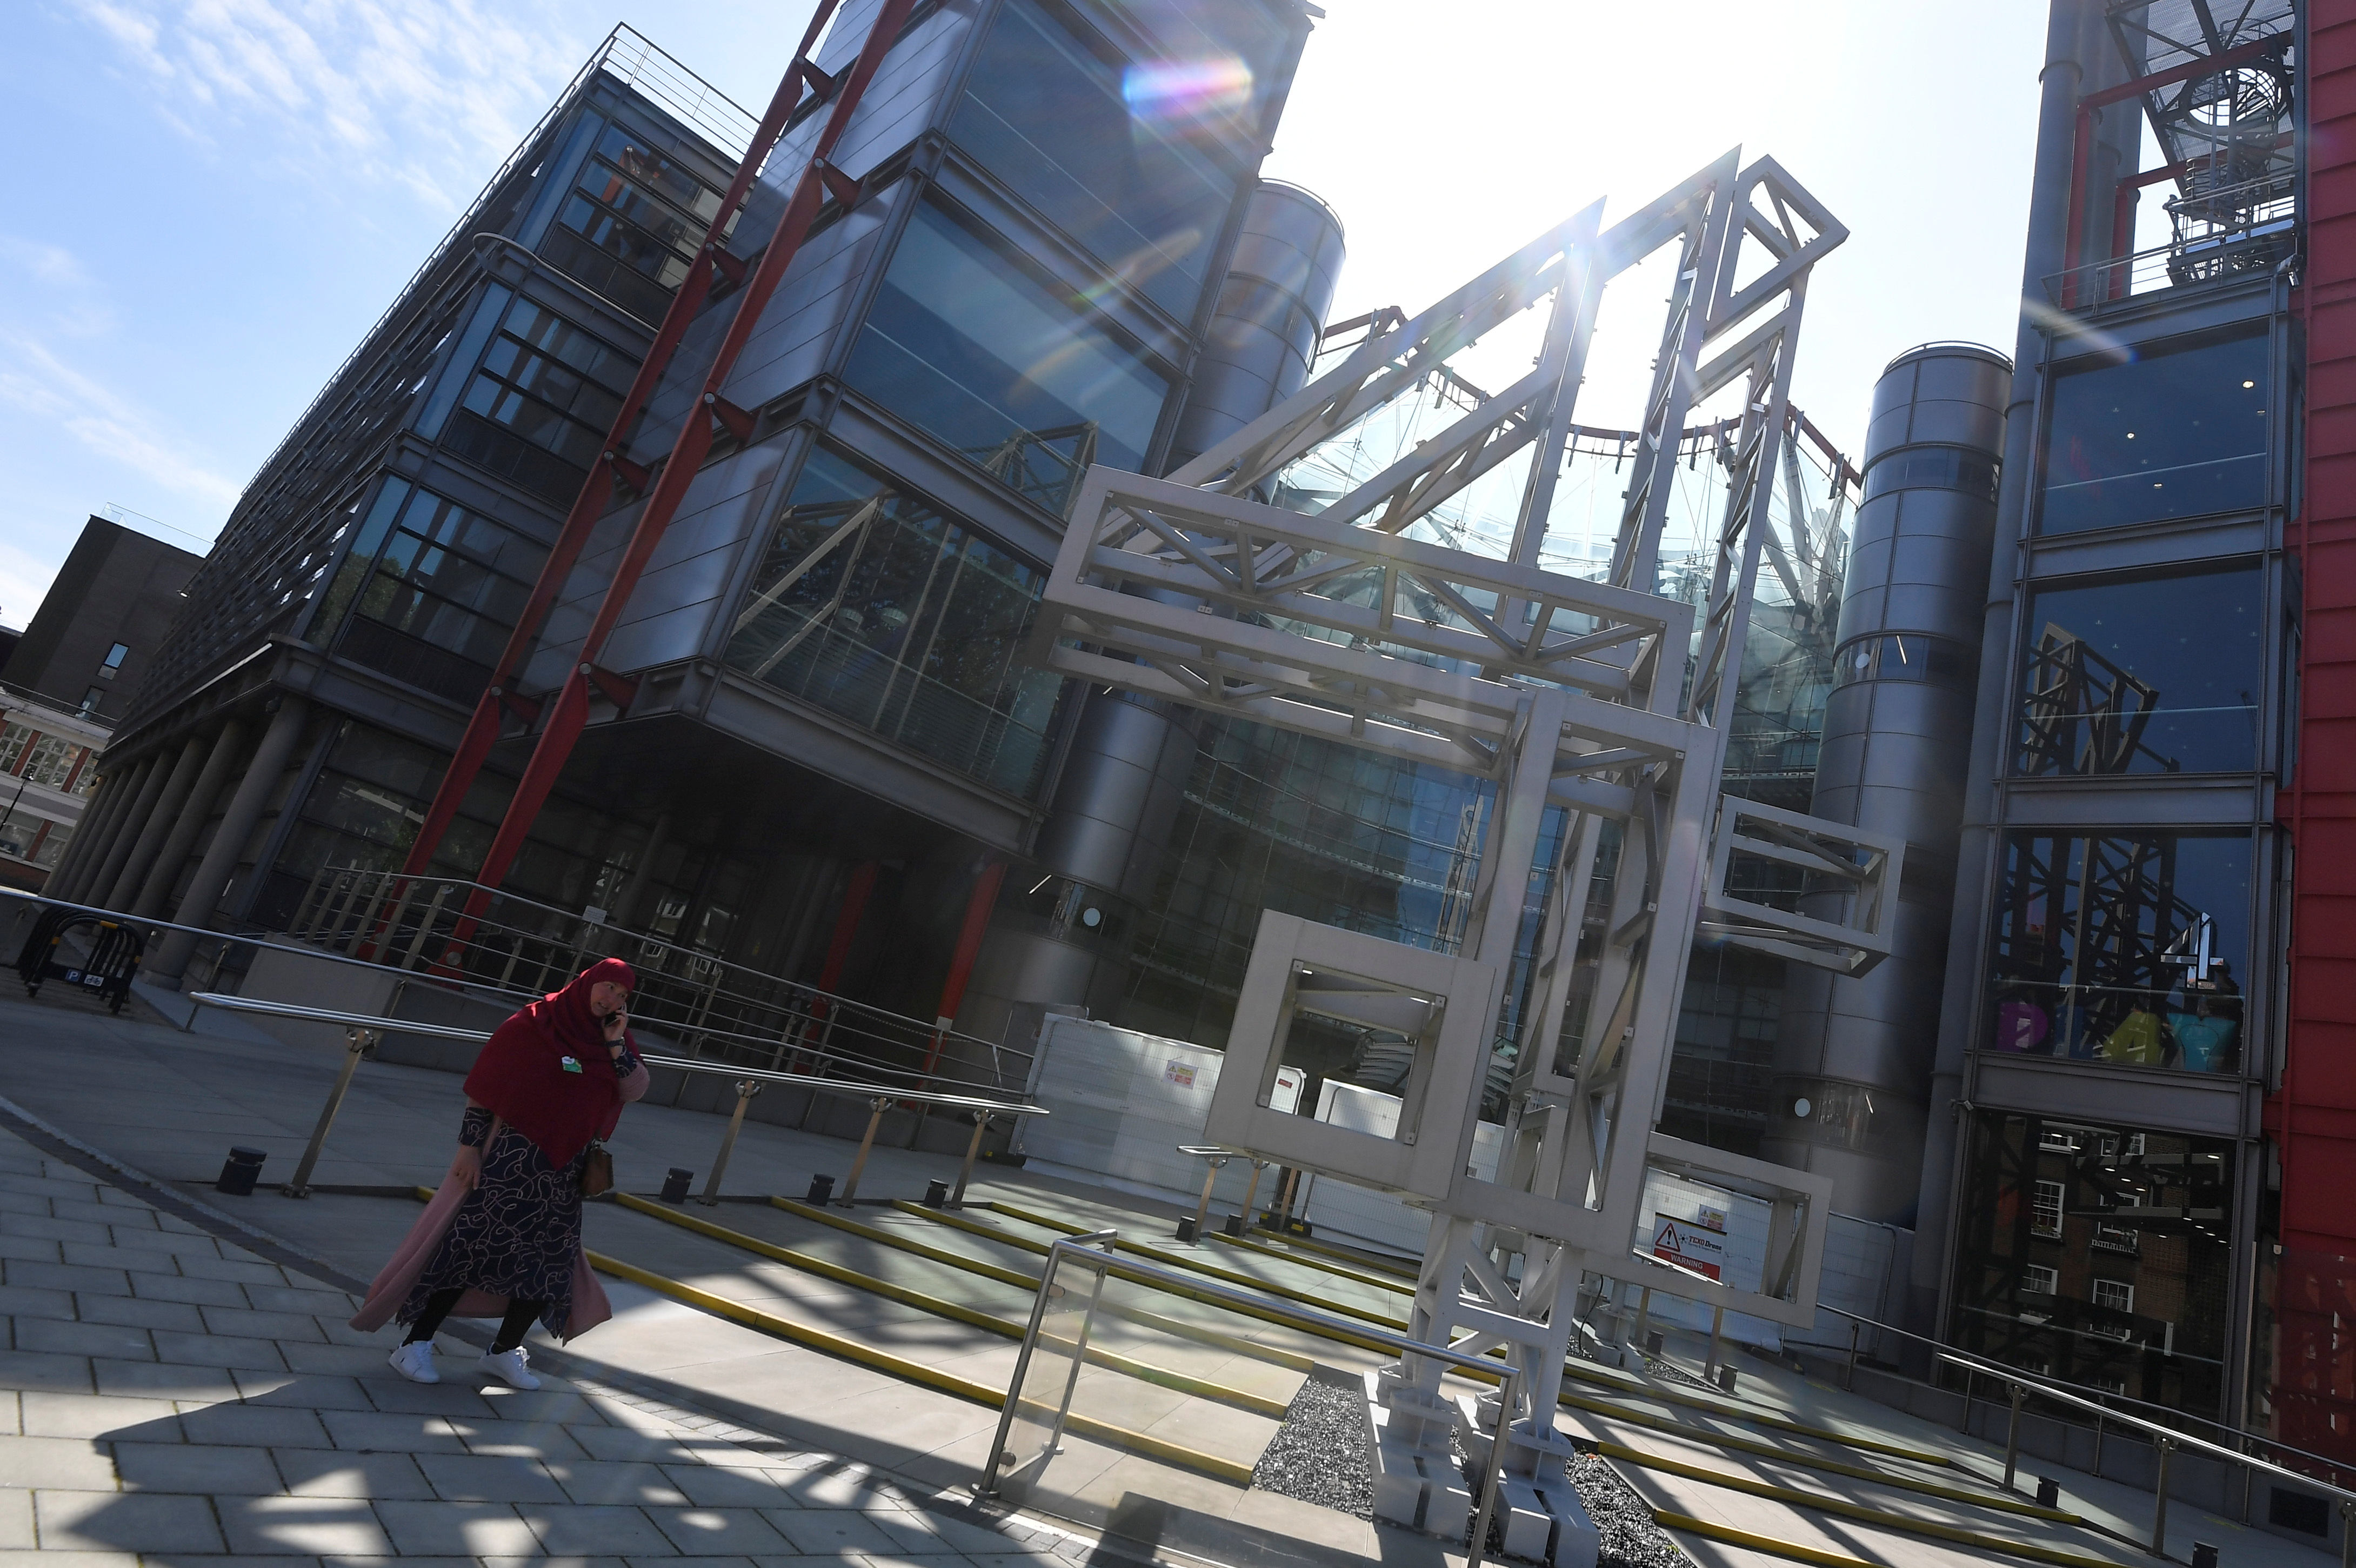 A person walks past the Channel 4 television channel offices in London, Britain, June 23, 2021. REUTERS/Toby Melville